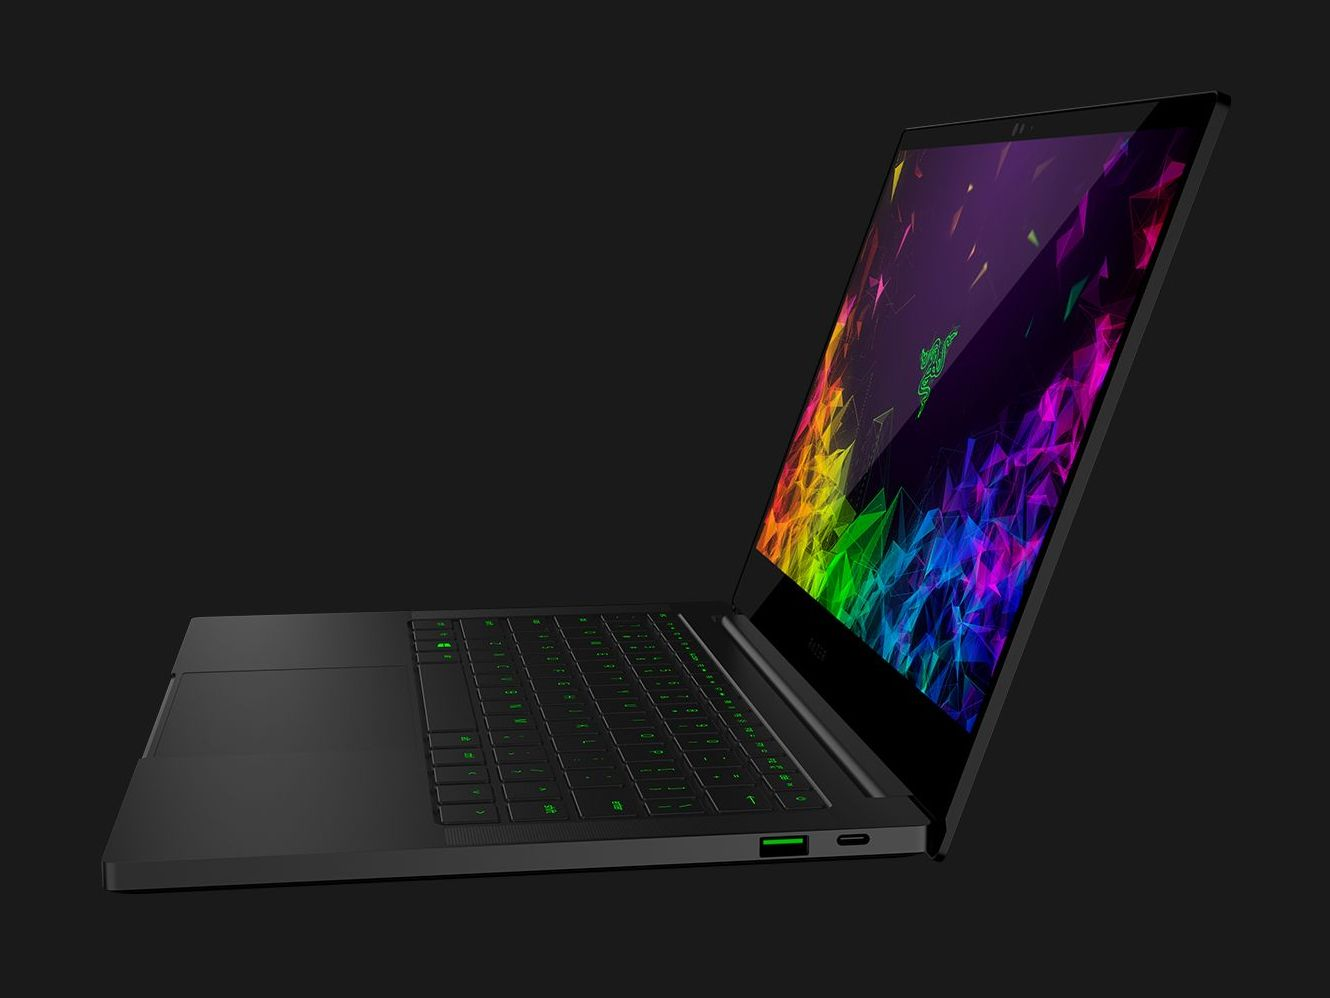 Razer Blade Stealth (i7-8565U, GeForce MX150) Laptop Review